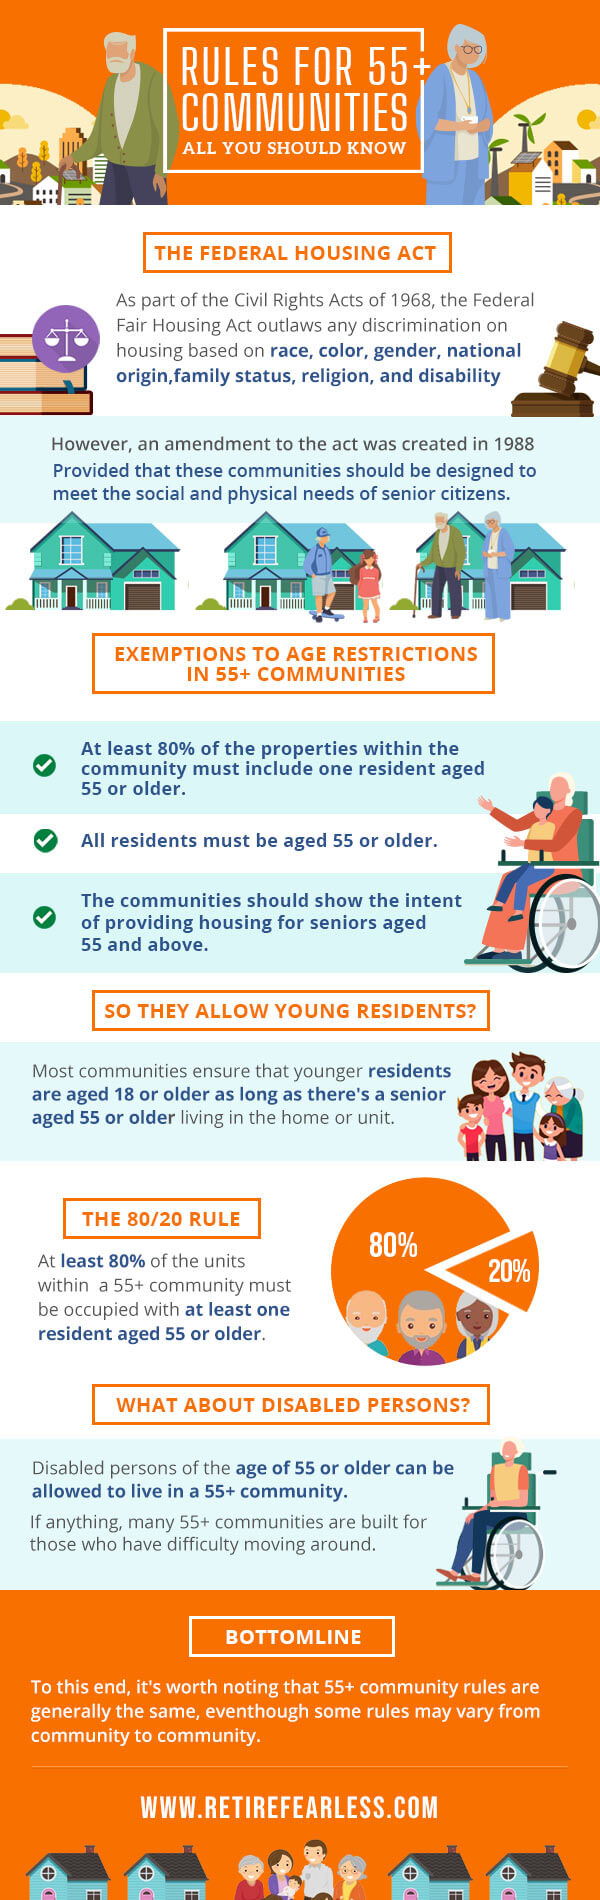 Rules for 55+ Communities - All You Should Know